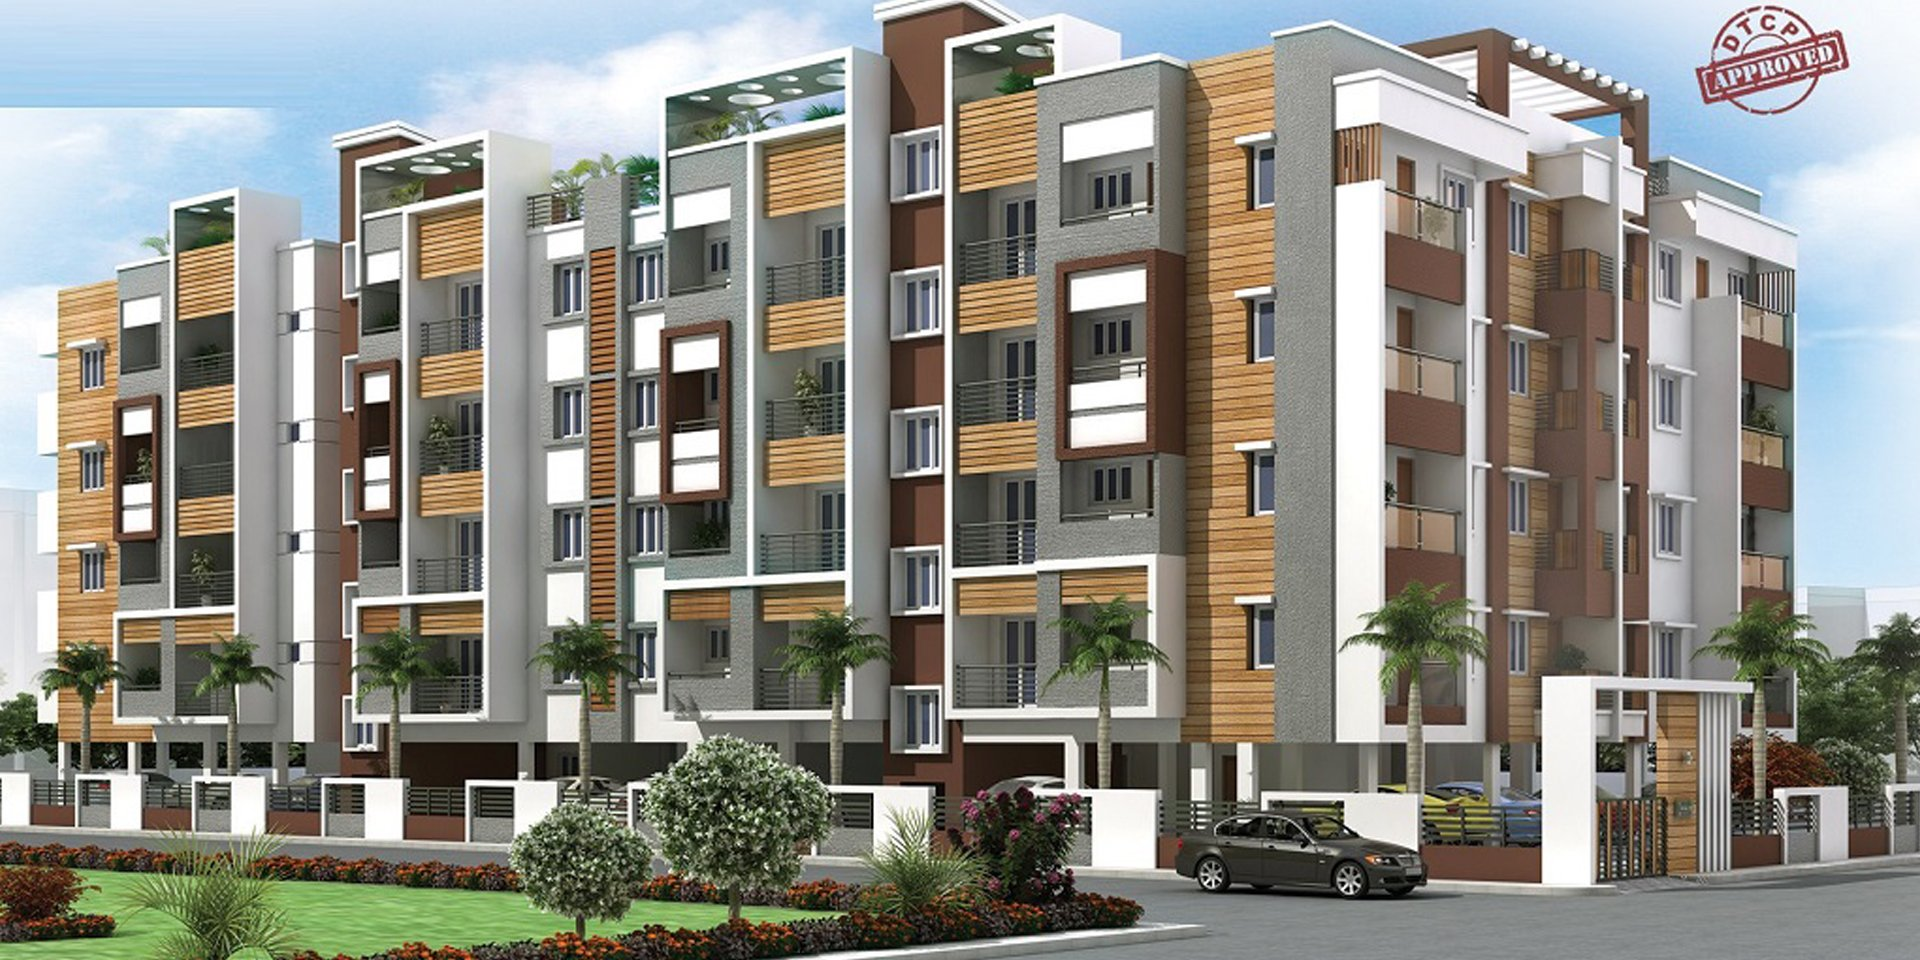 Flats for sale in Sree Bhoomi Neela Enclave Siruseri